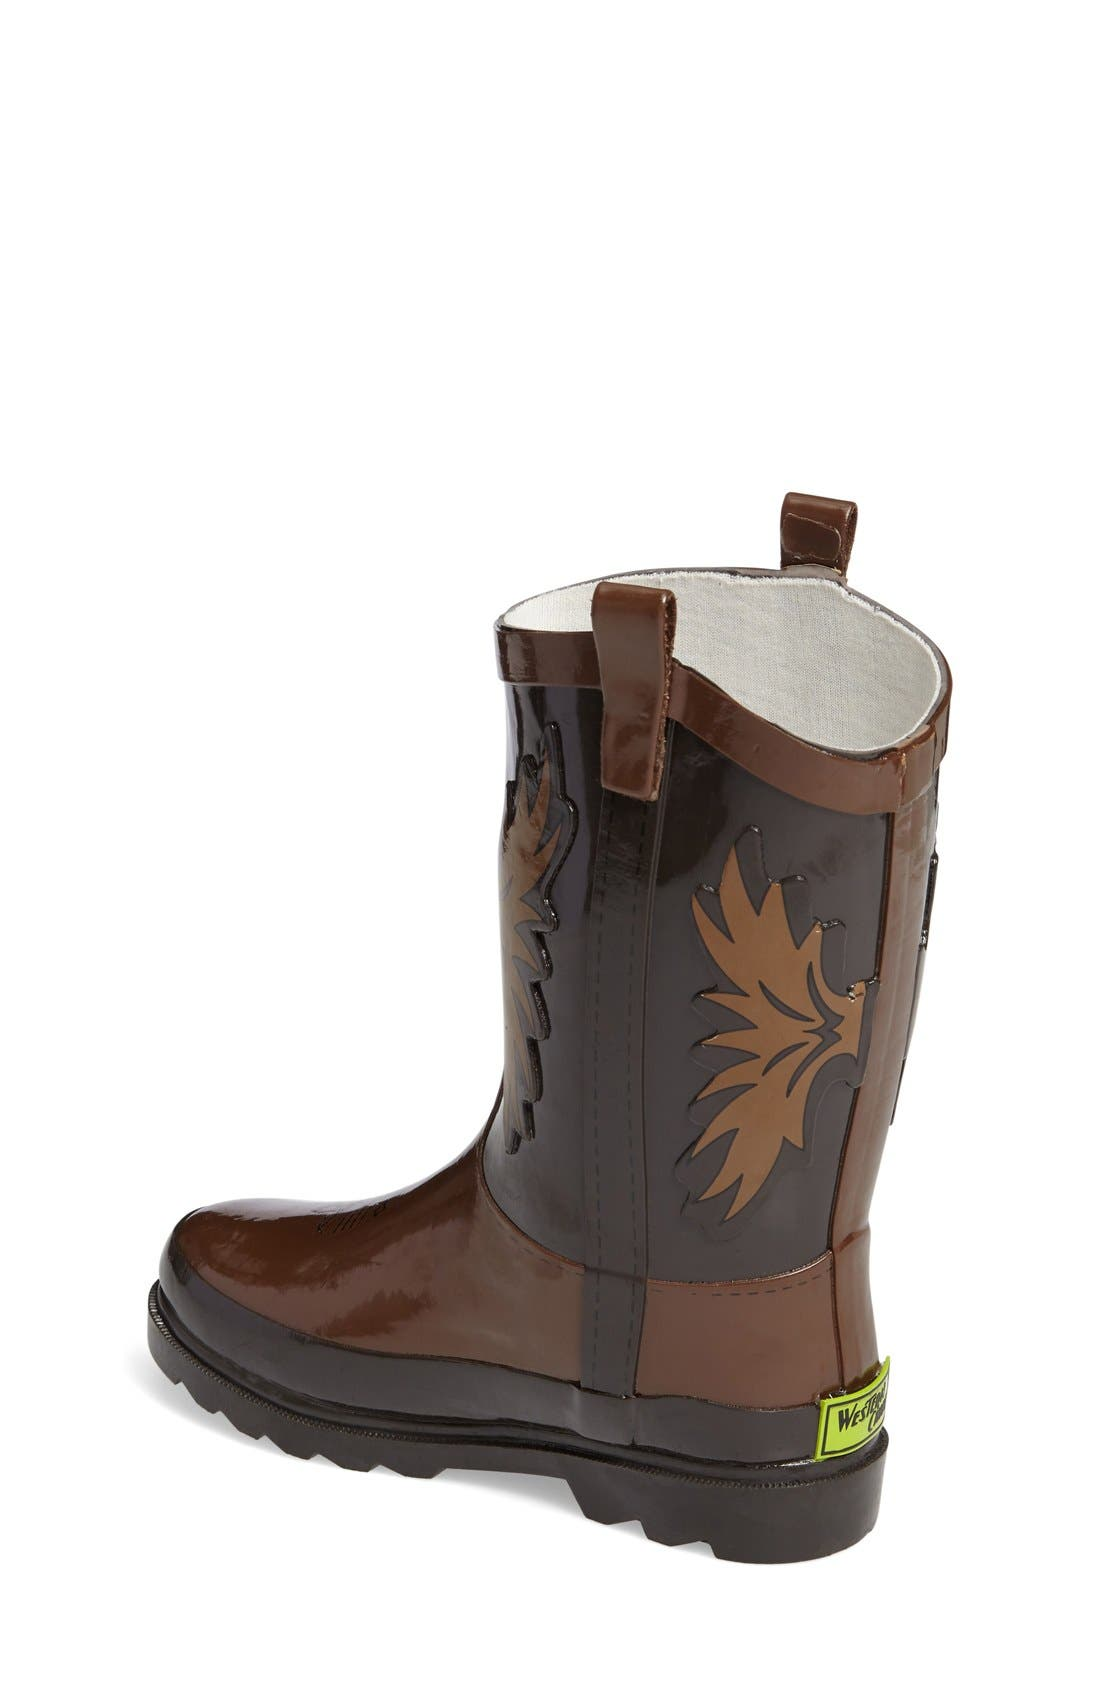 Cowboy Waterproof Rain Boot,                             Alternate thumbnail 2, color,                             210